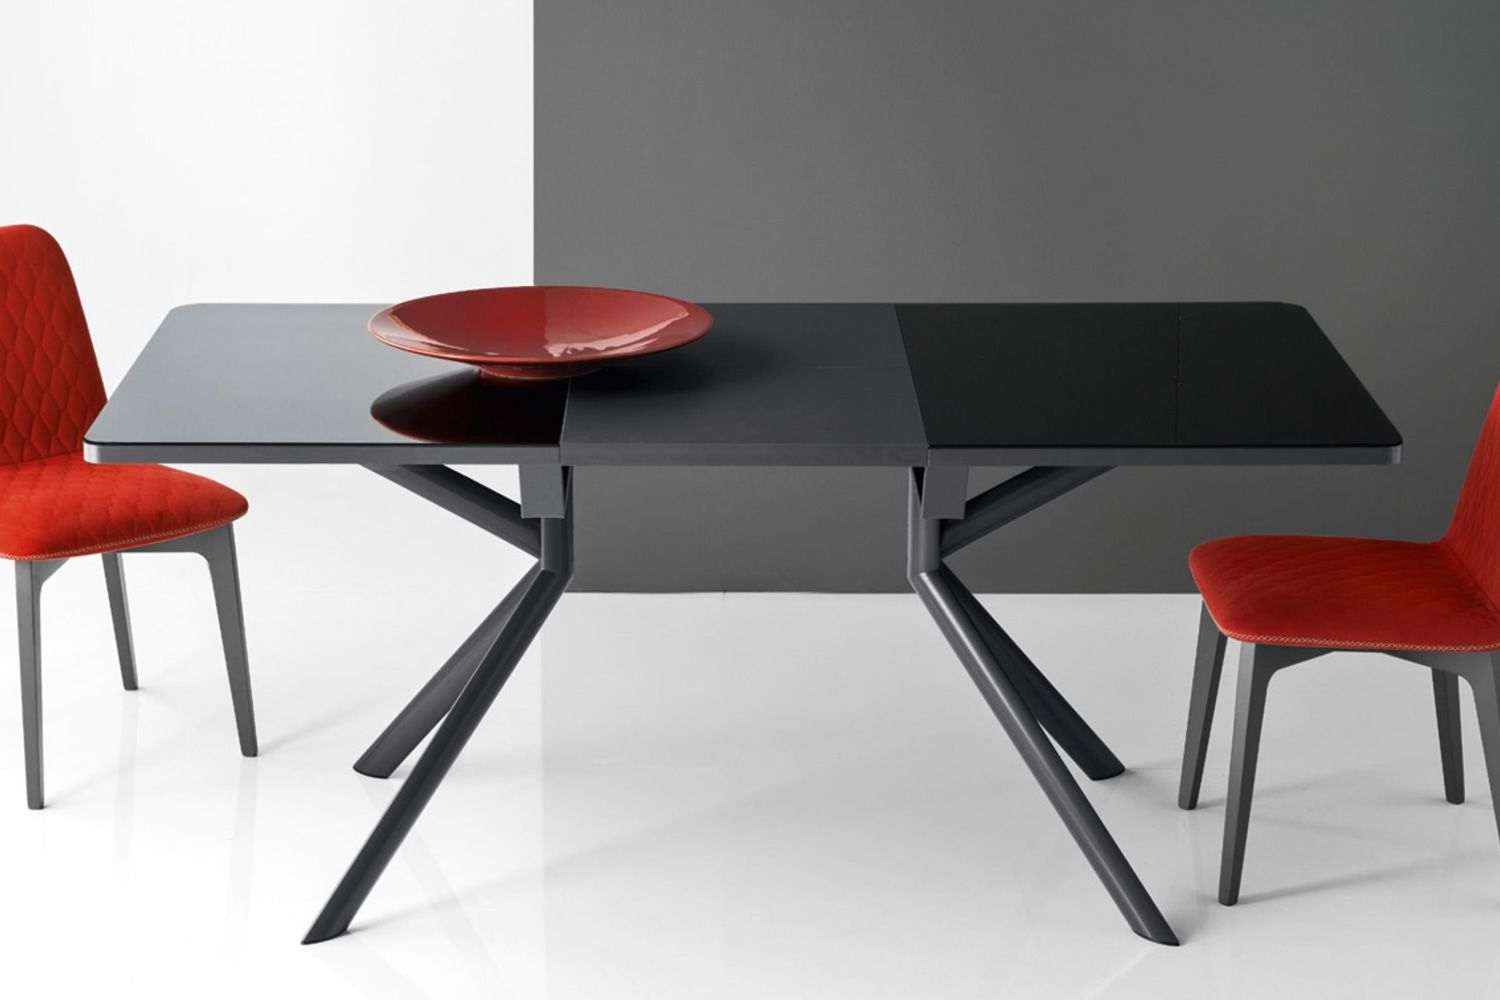 Cb4739 giove coonubia calligaris extendable metal table for When did table 52 open